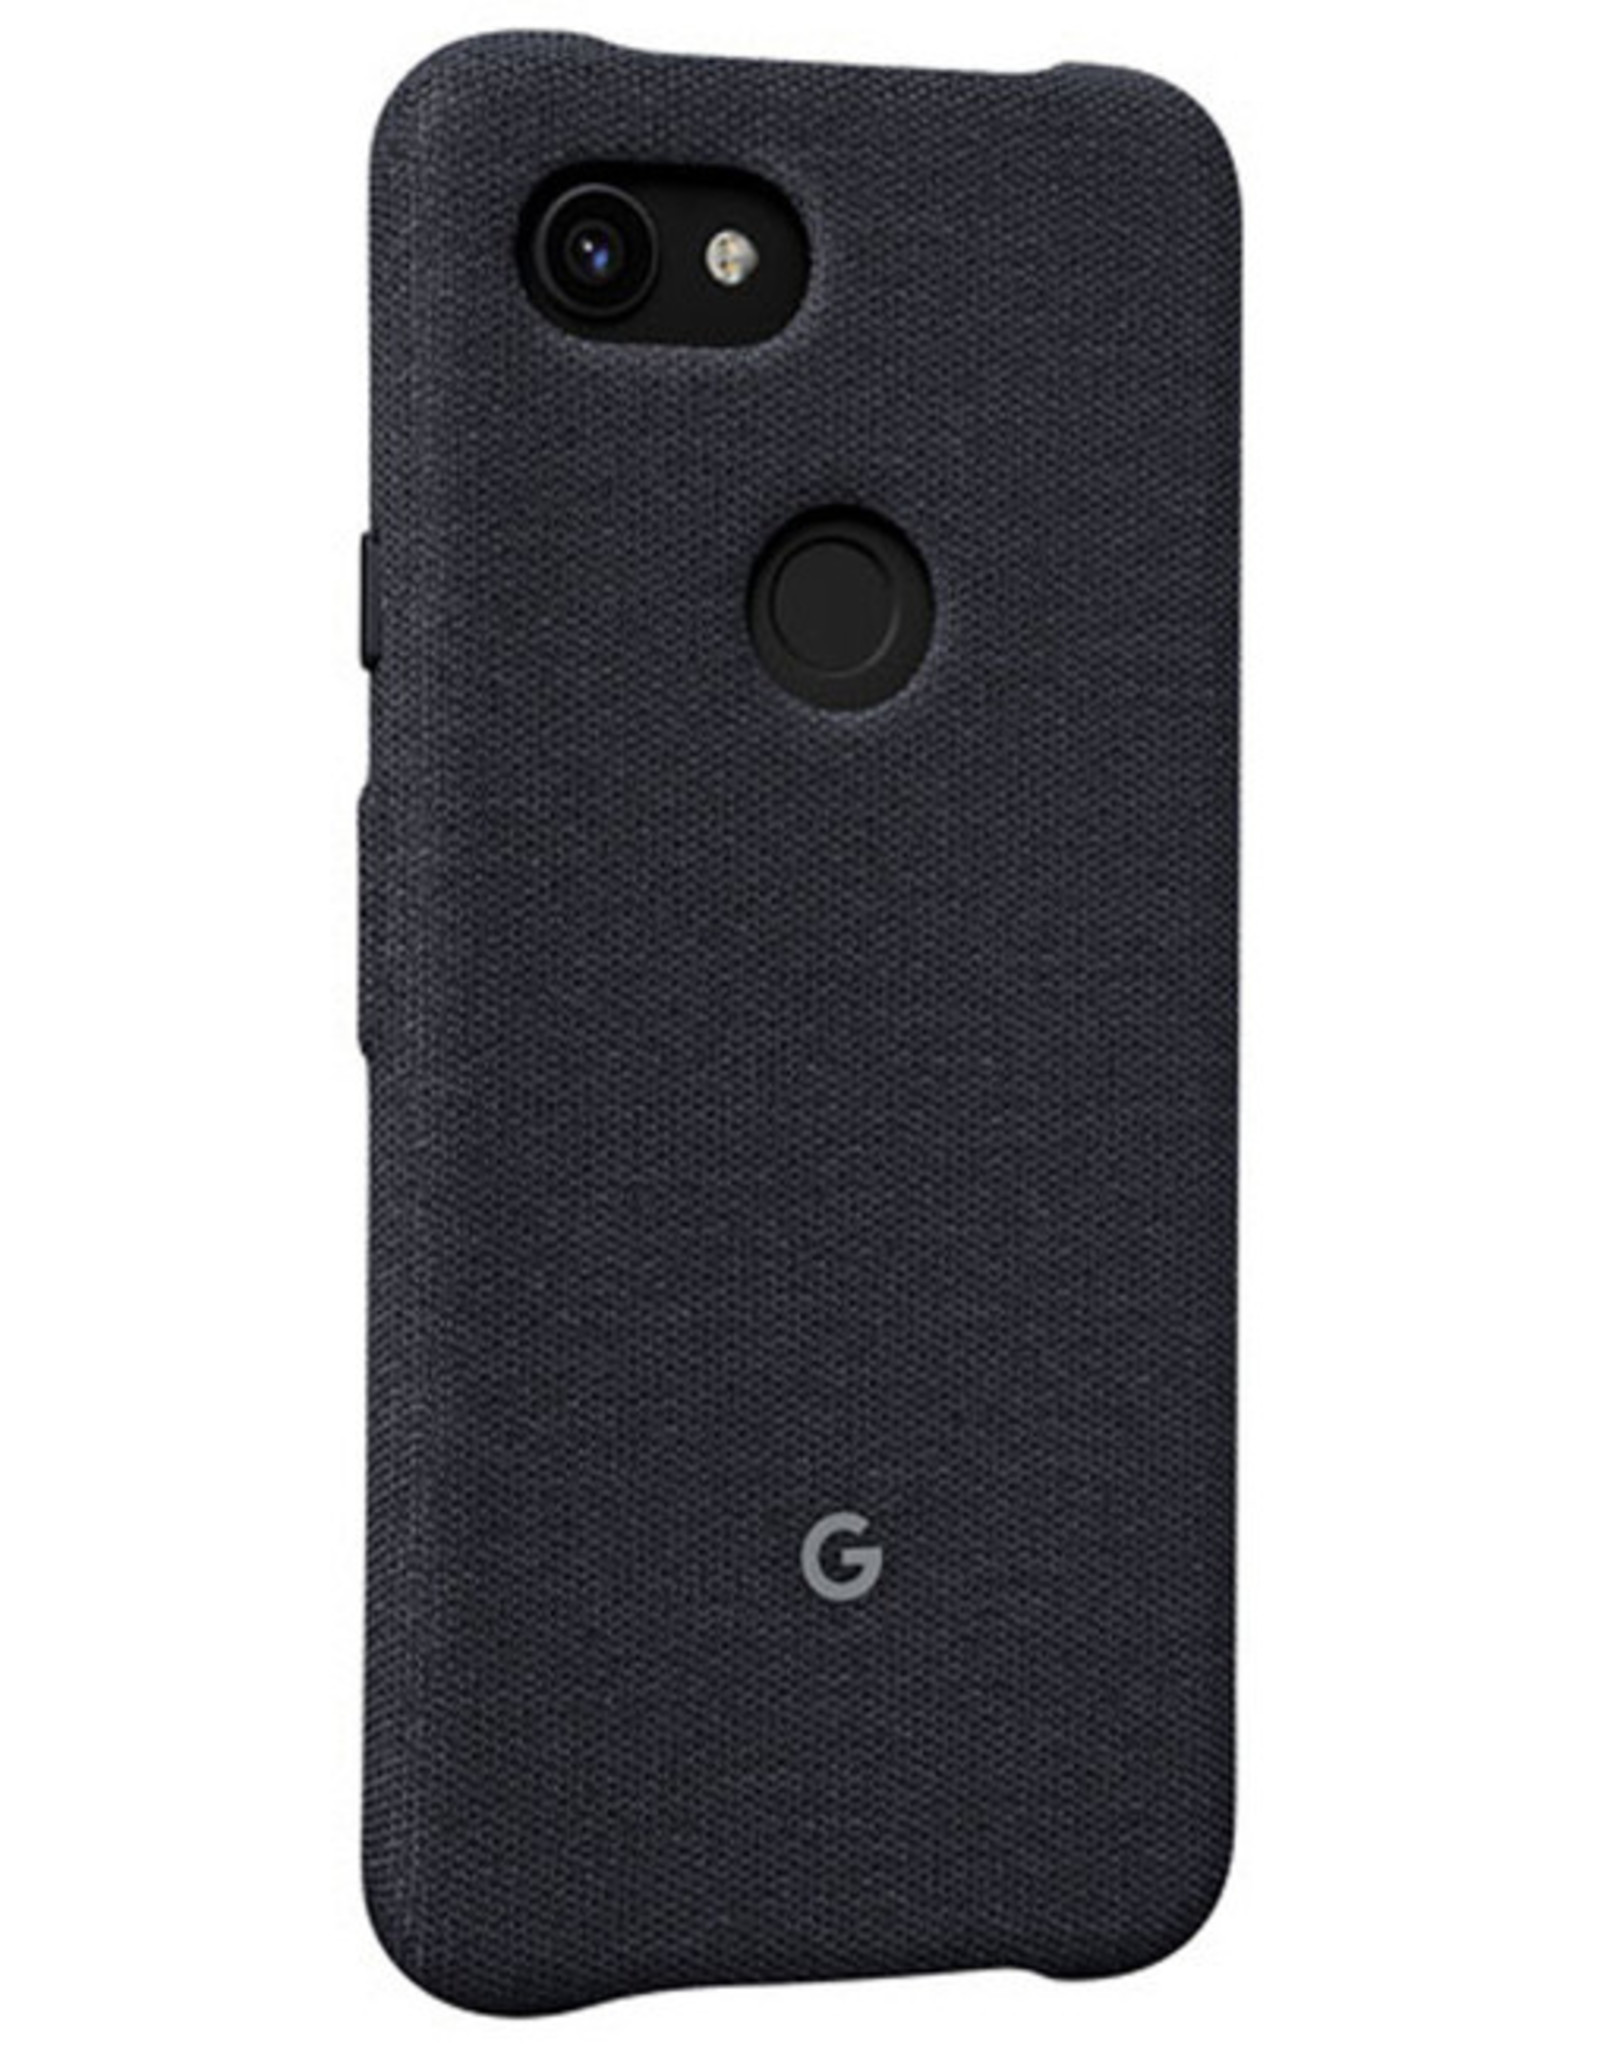 Google Google - Fabric Case Carbon (Black) for Google Pixel 3a XL 120-2451